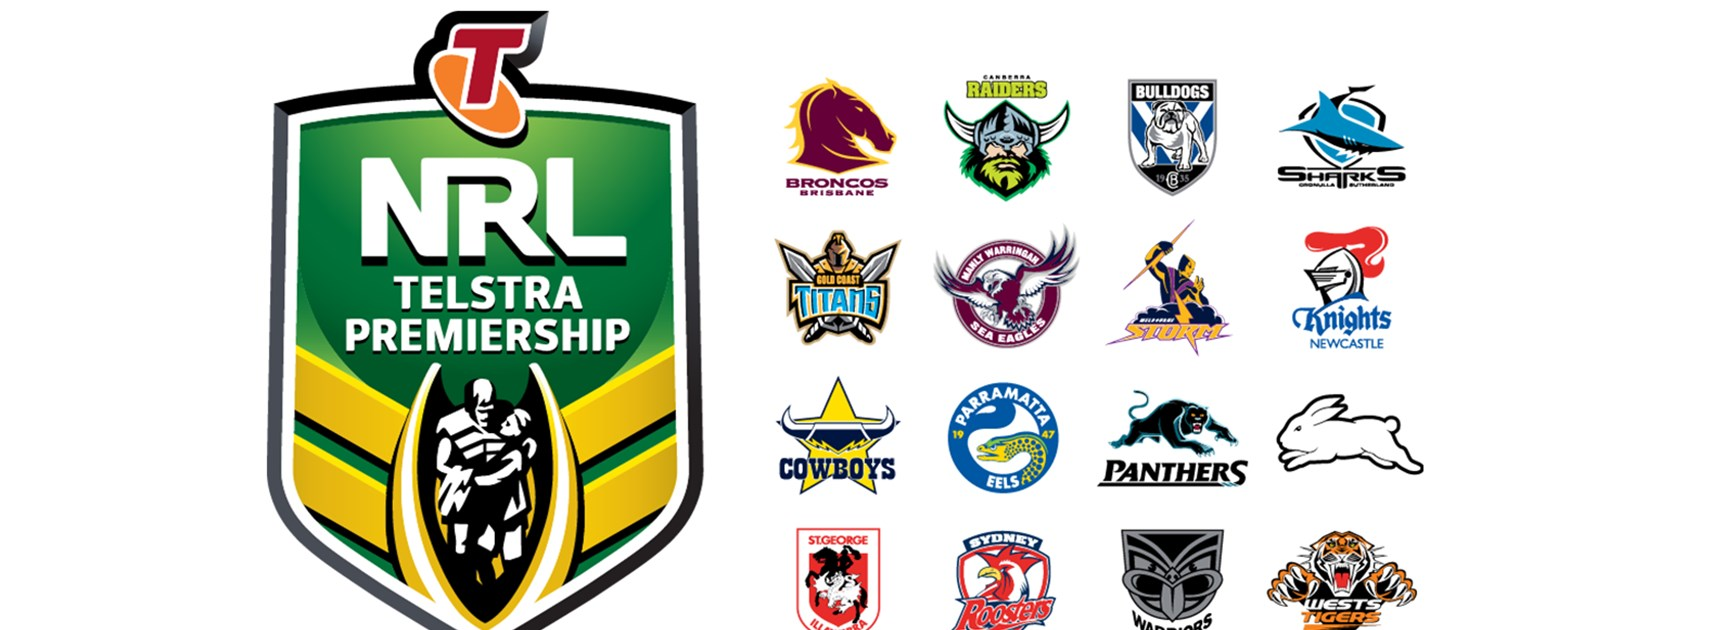 NRL Telstra Premiership logo and the 16 NRL club logos.